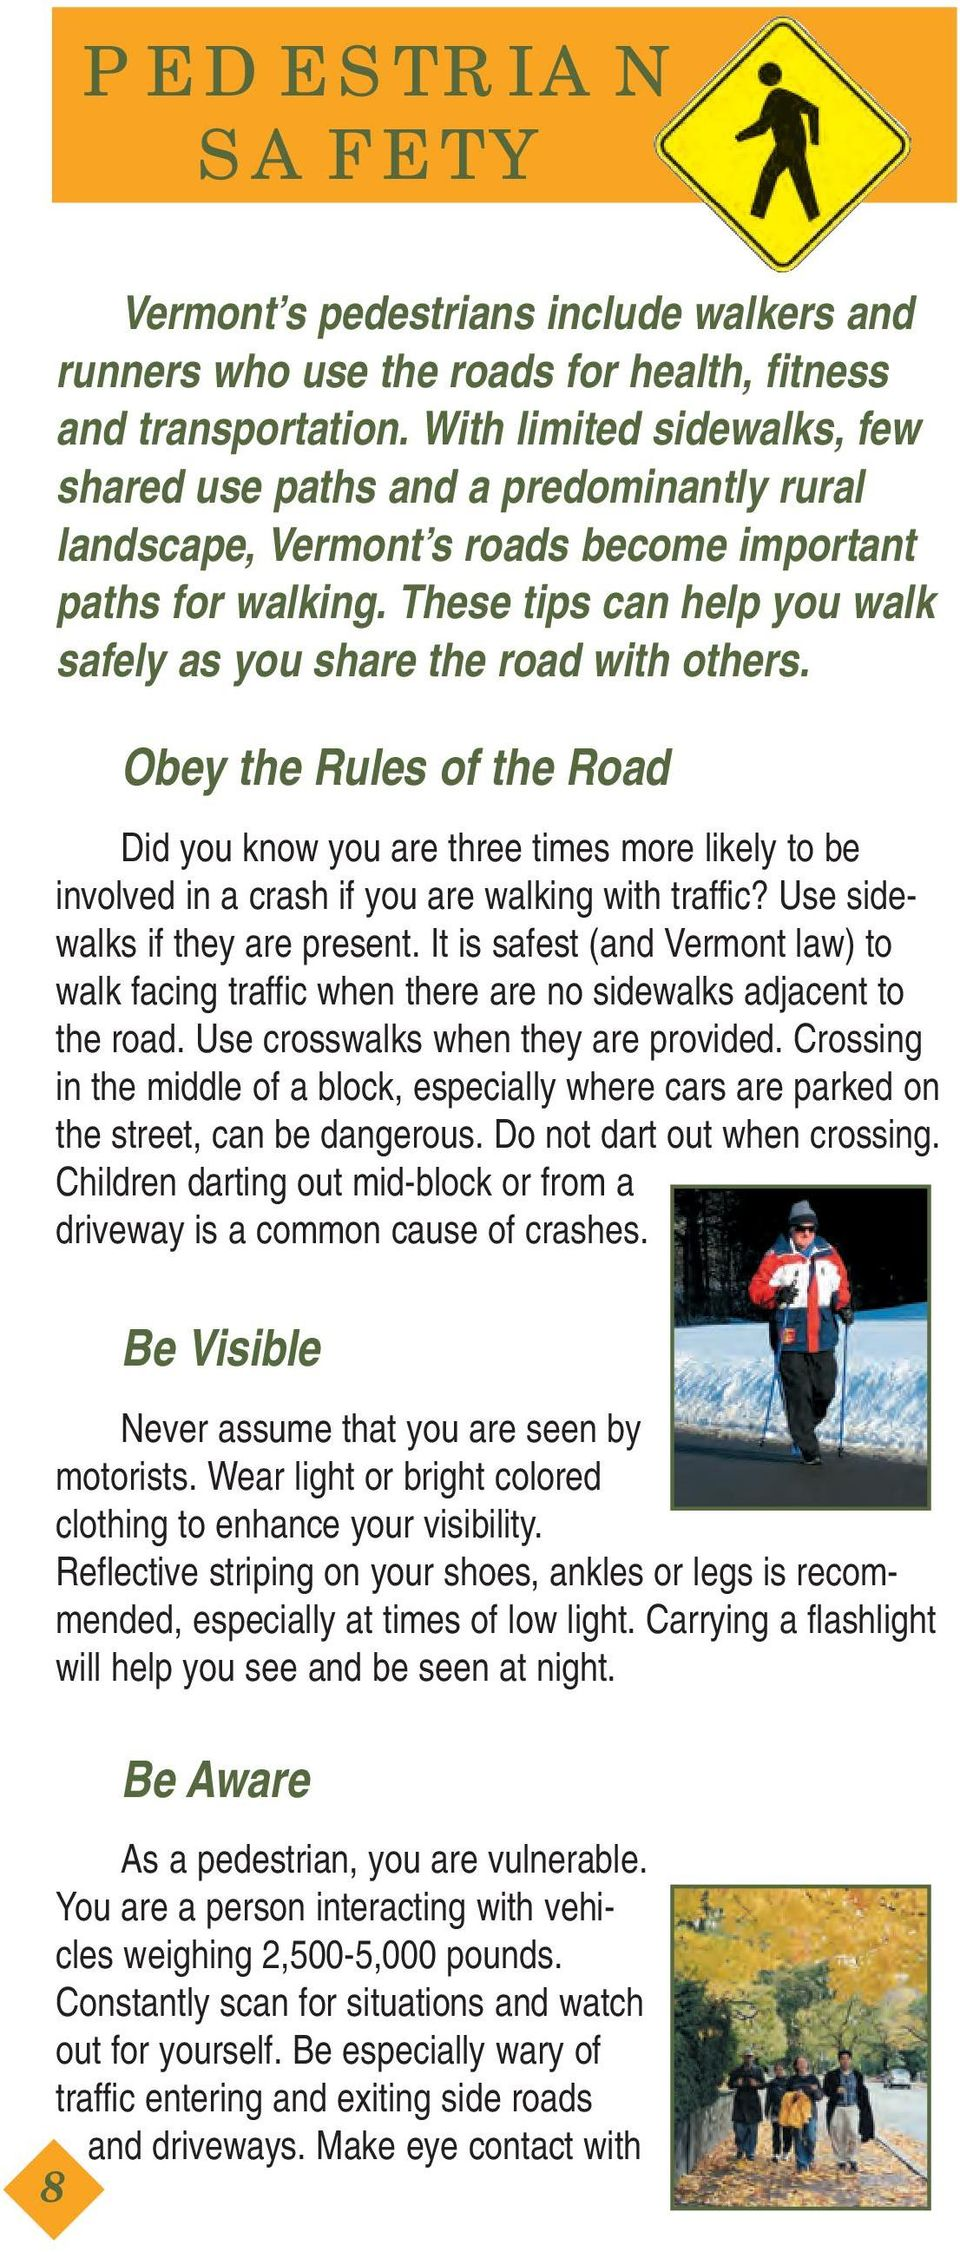 These tips can help you walk safely as you share the road with others.